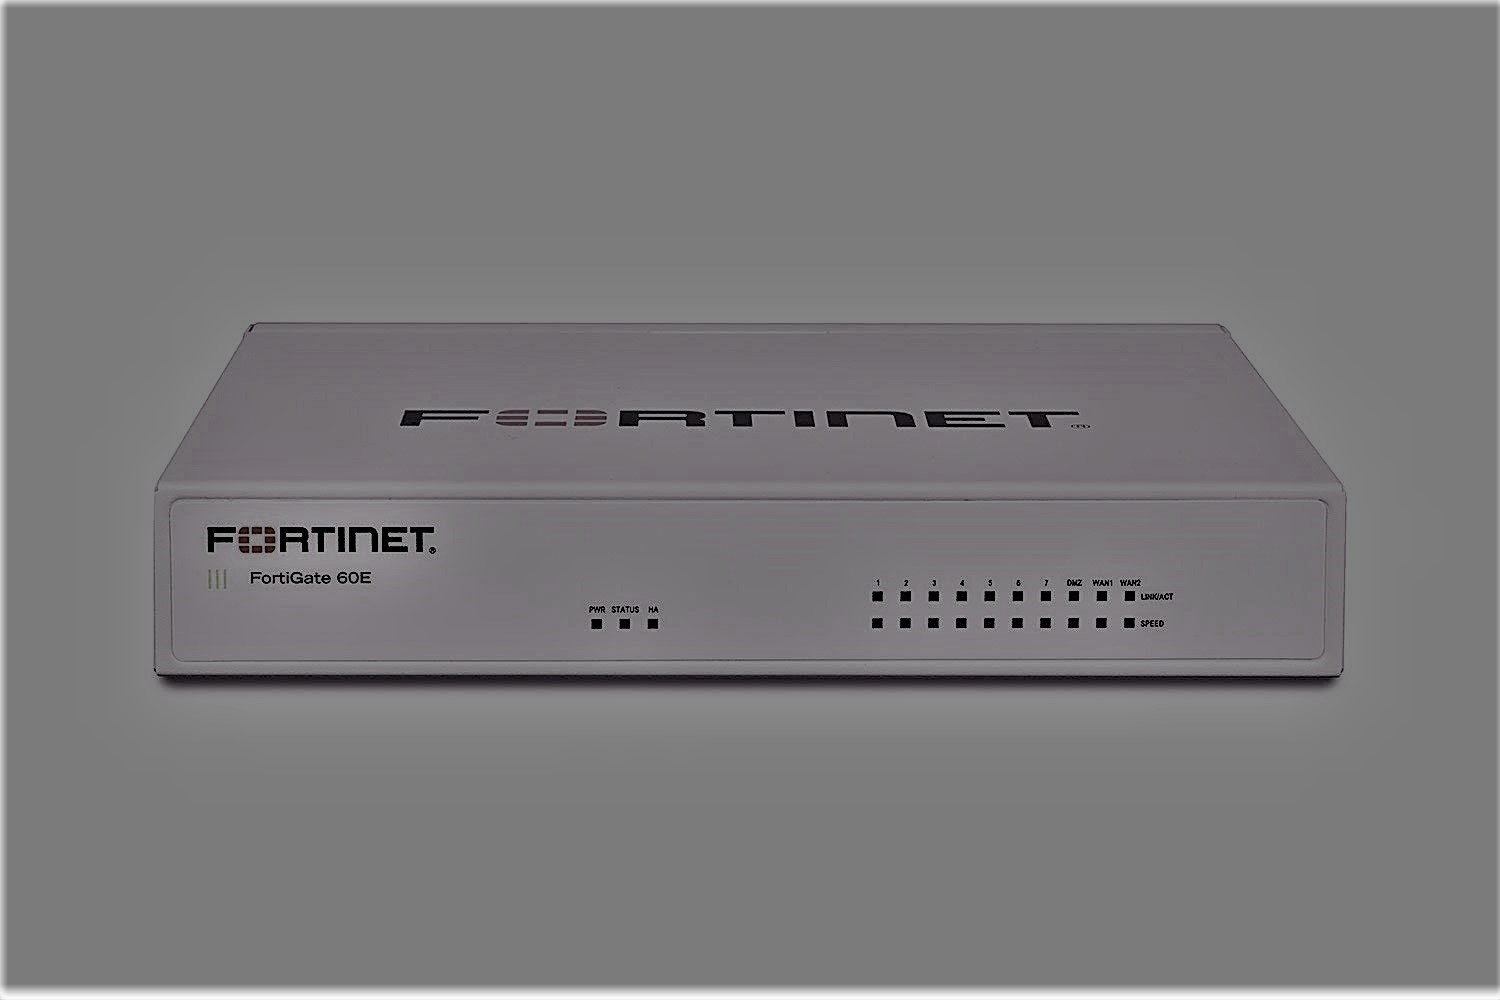 Fortinet Products on Sale!